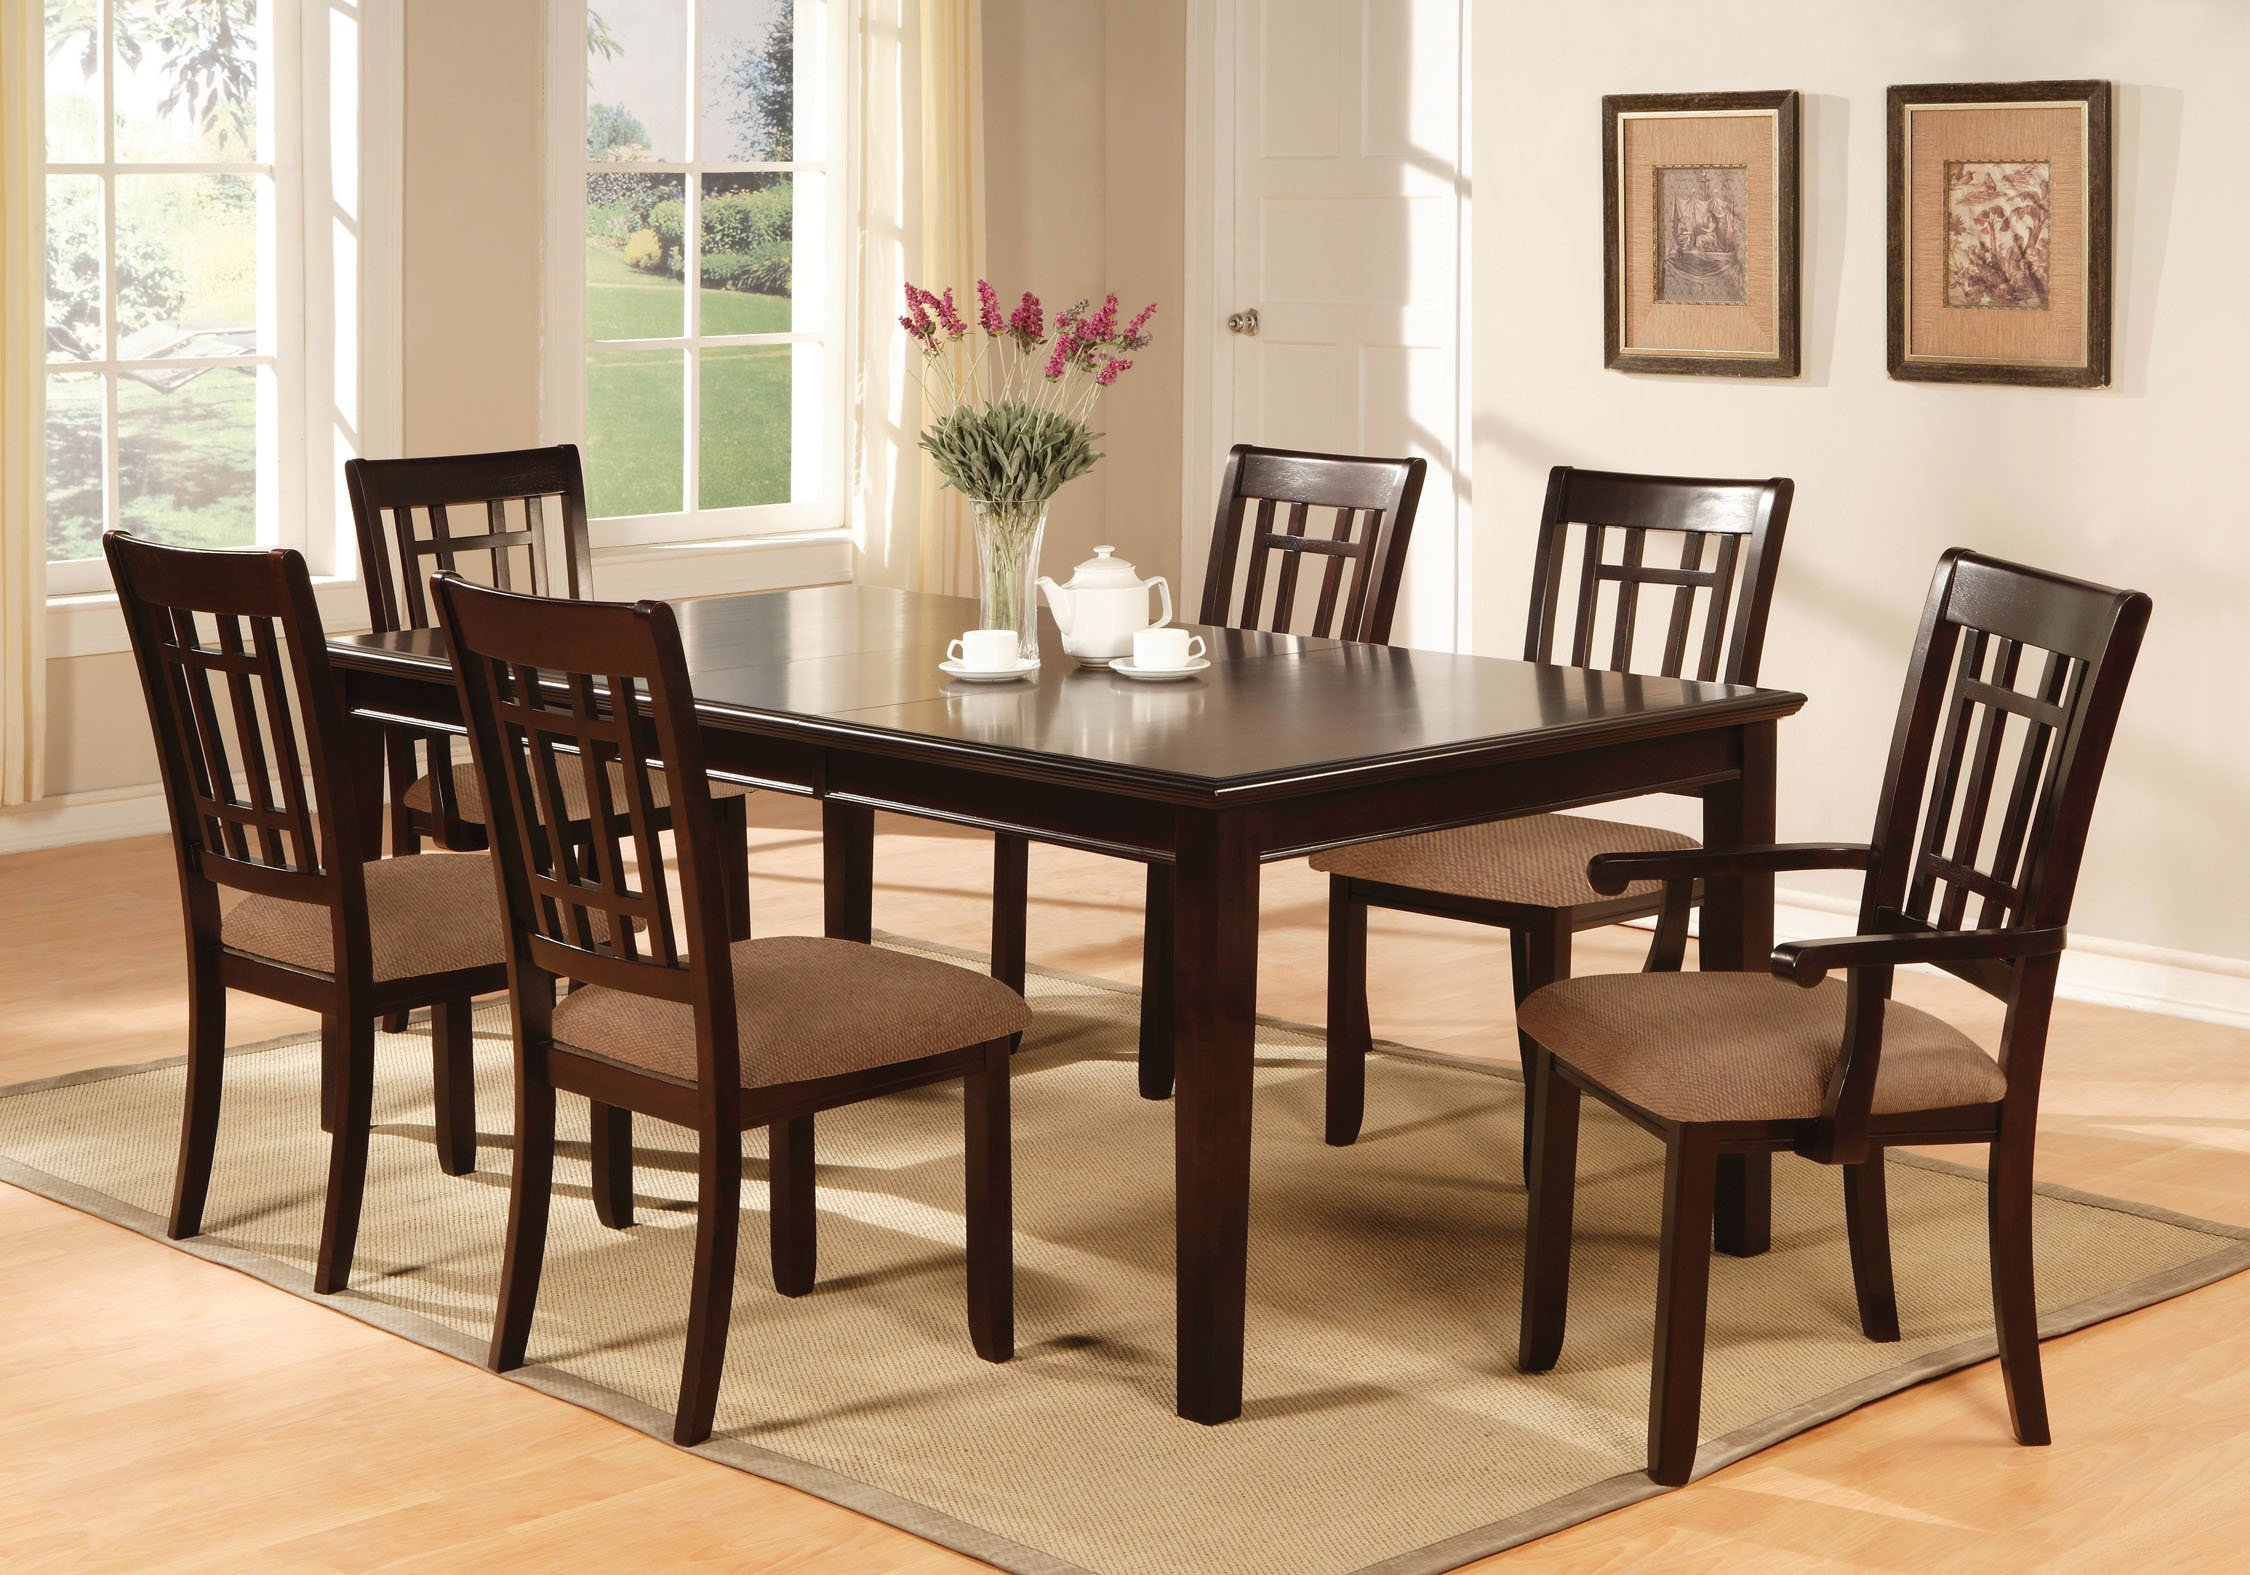 Furniture of America Madison 7-Piece Dining Table Set with 18-Inch Leaf, Dark Cherry Finish